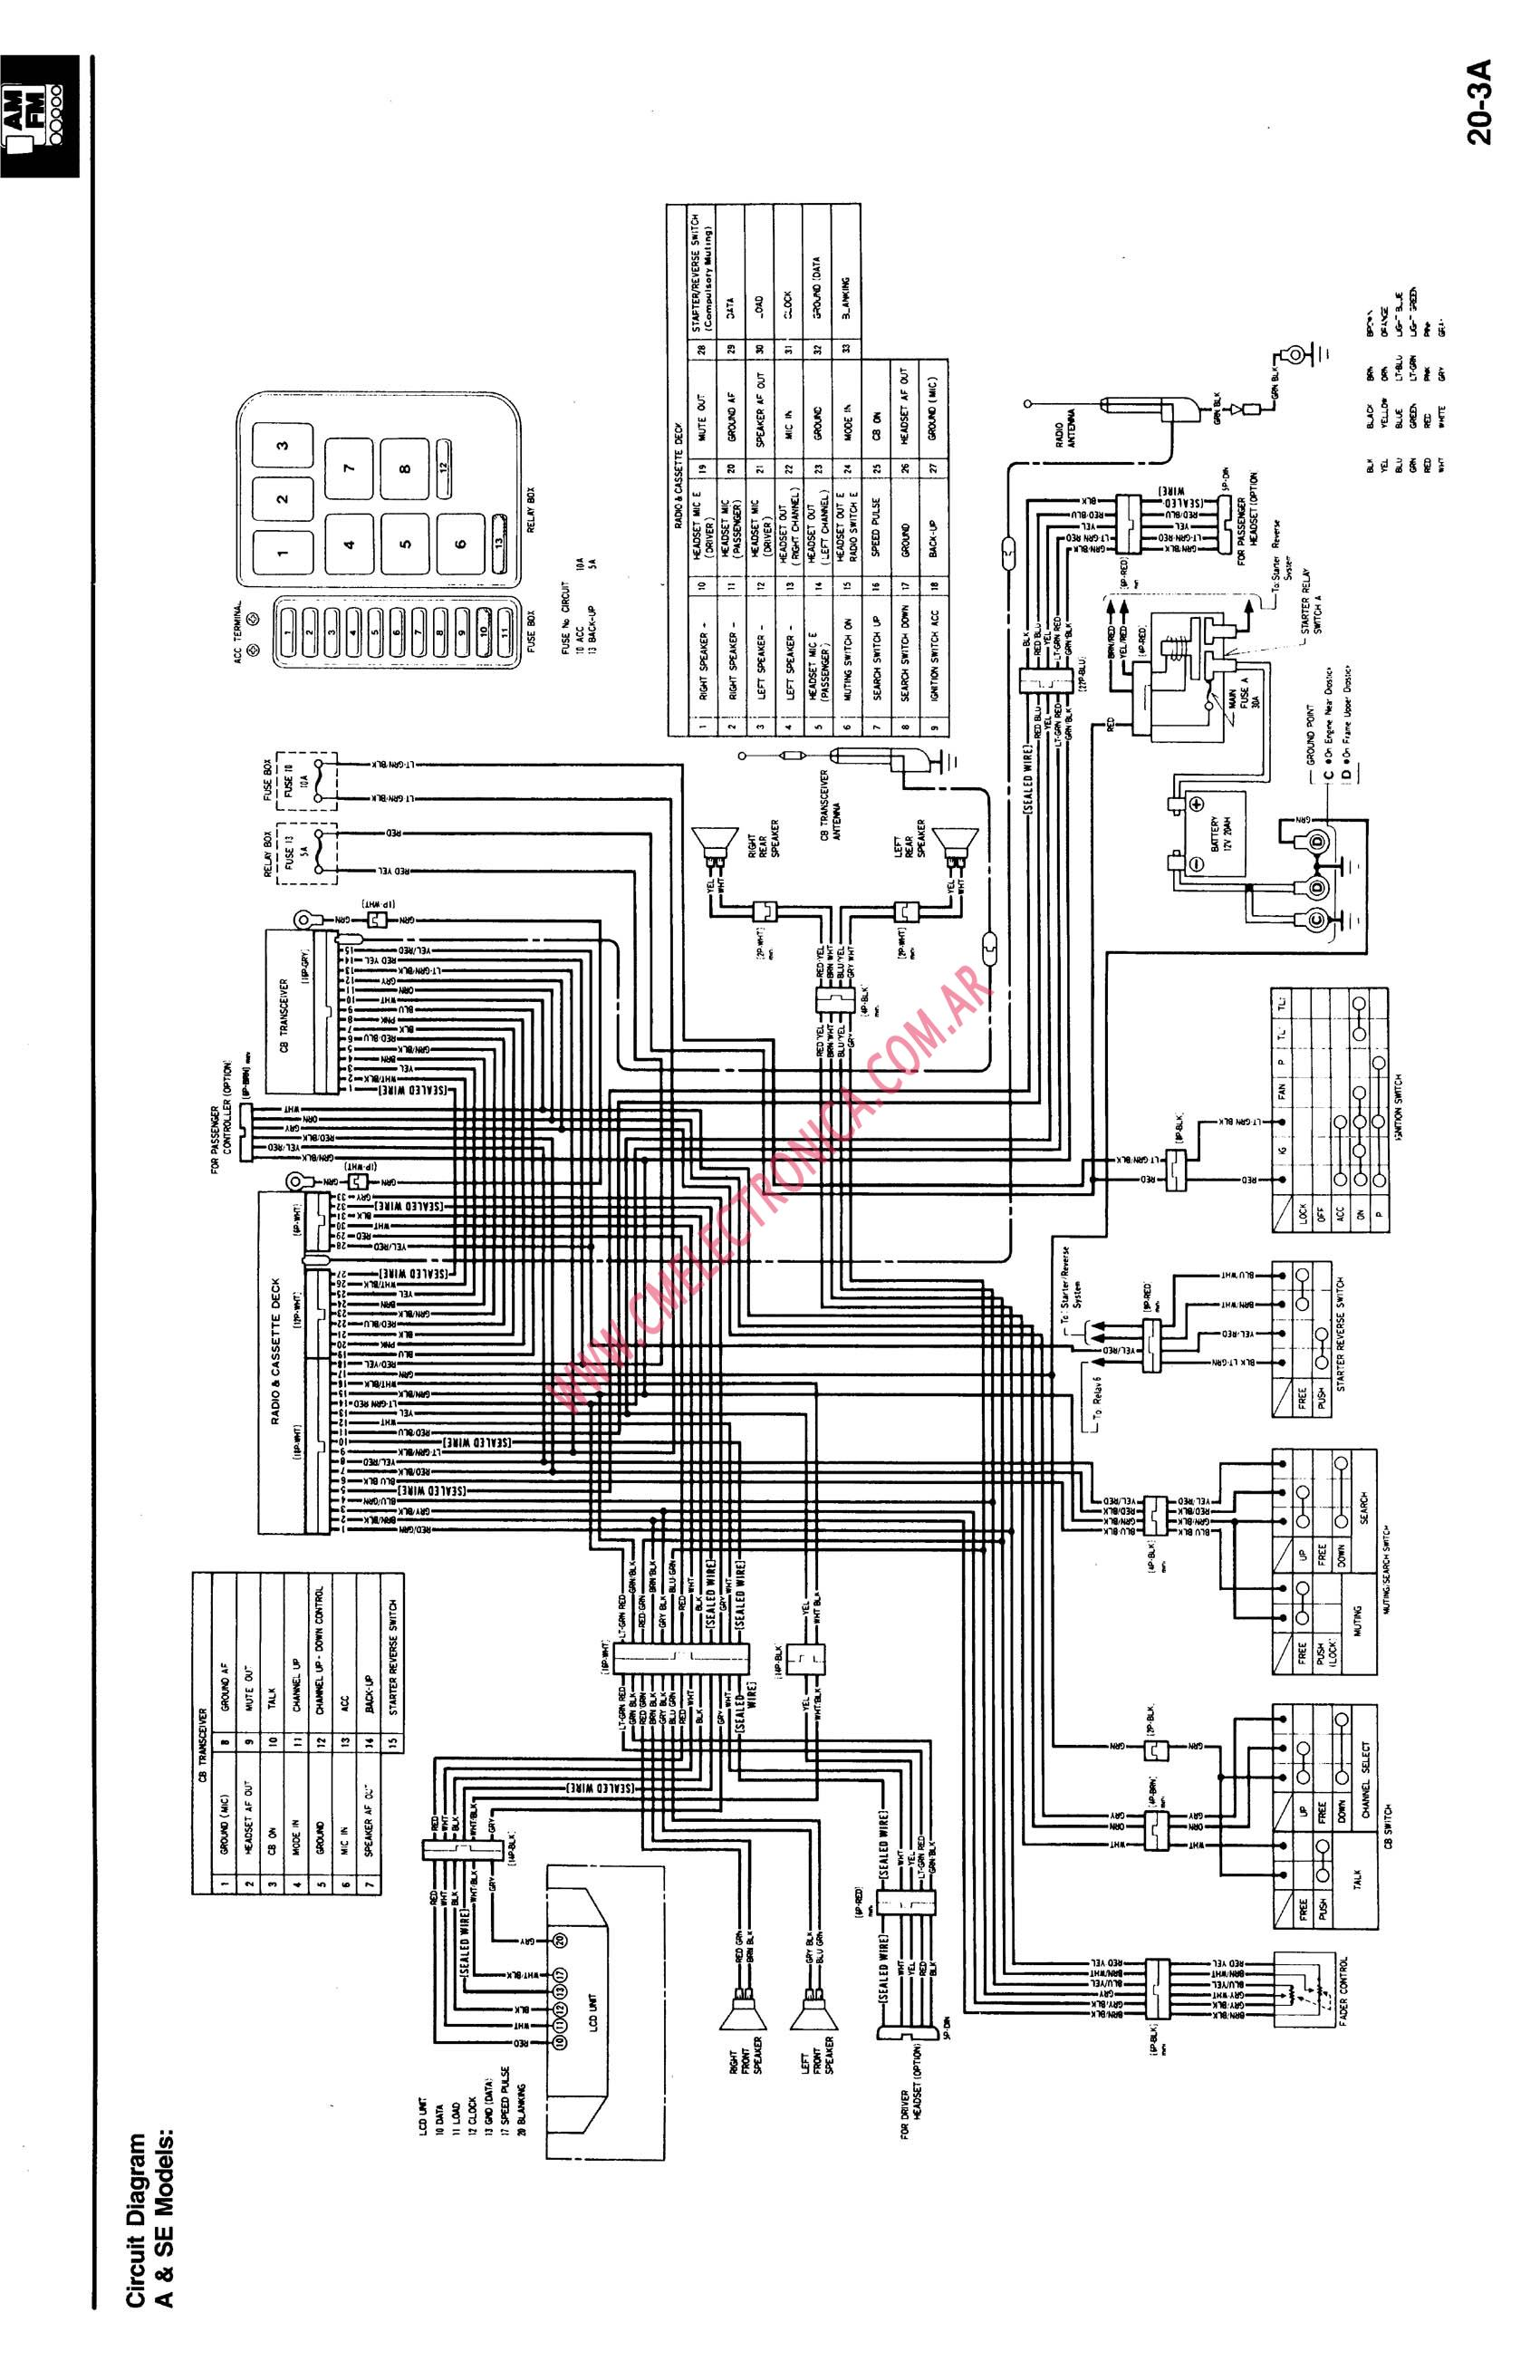 03 R1 Wiring Diagram 03 Free Engine Image For User